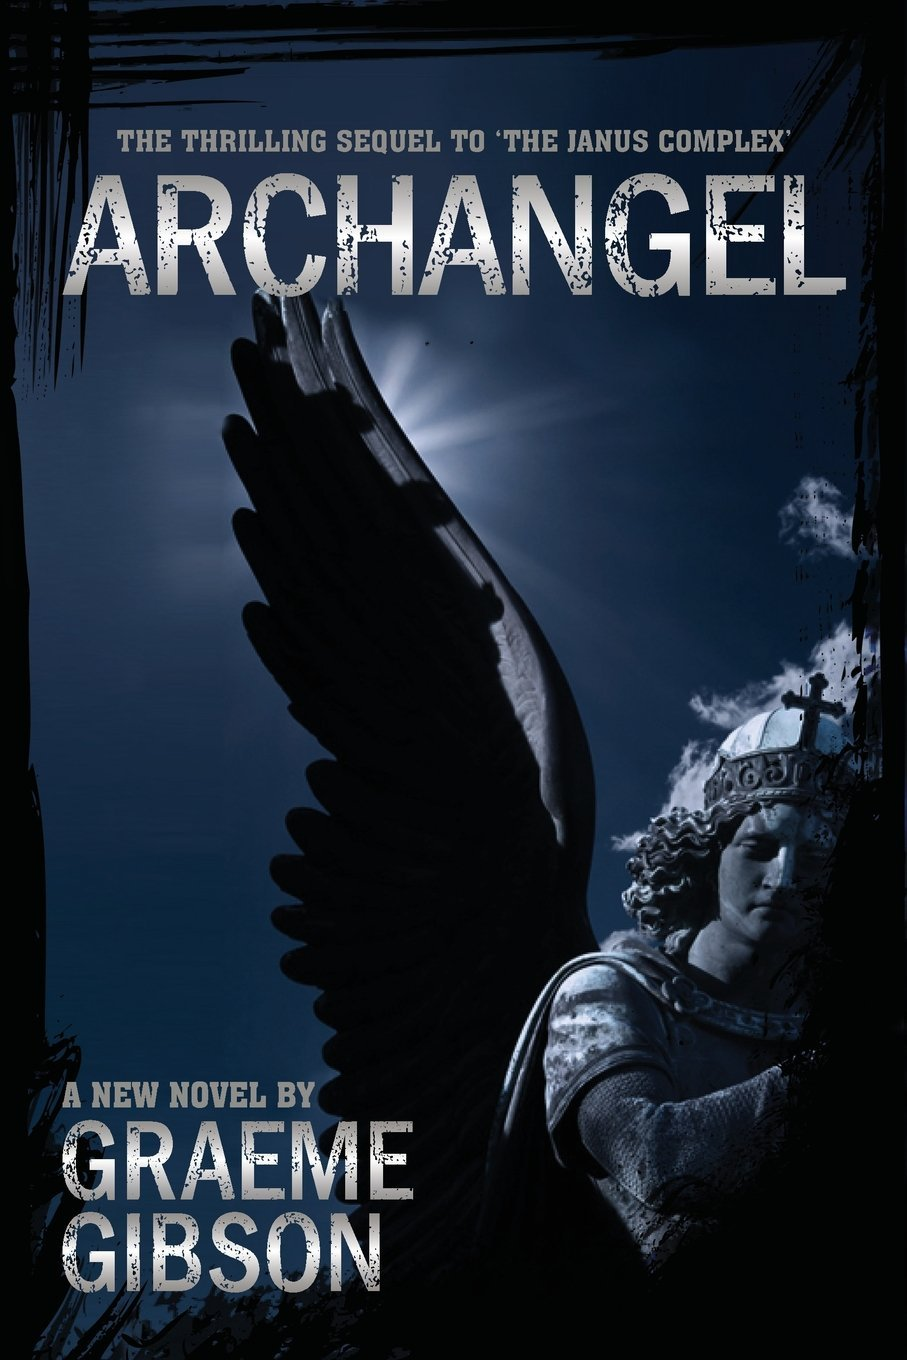 Archangel  by  Graeme   Gibson